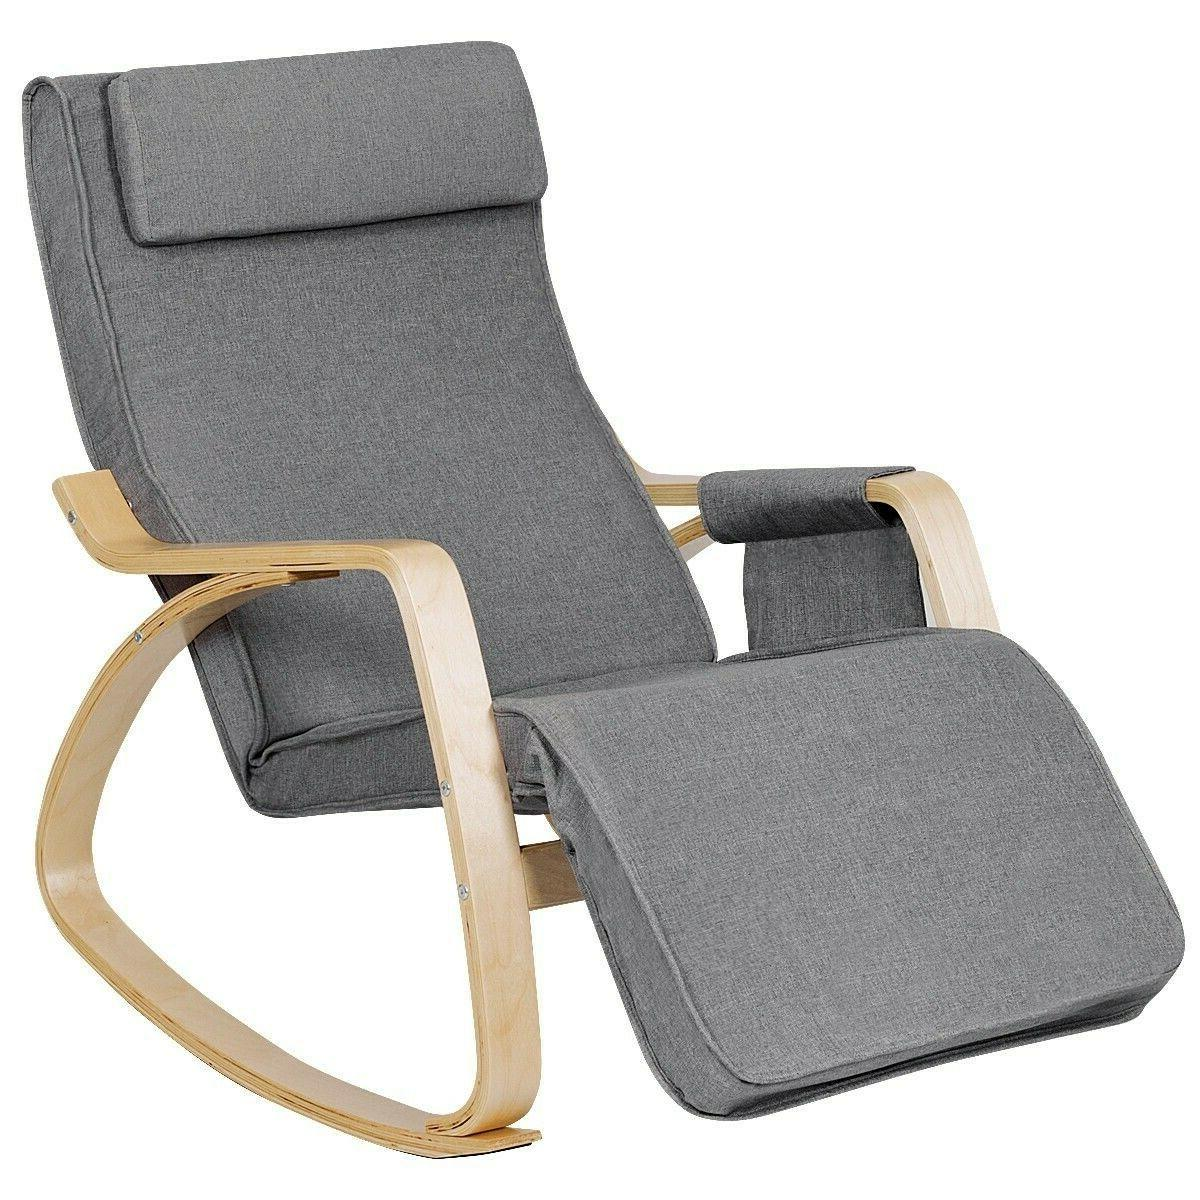 rocking chair realx lounge chair adjustable footrest